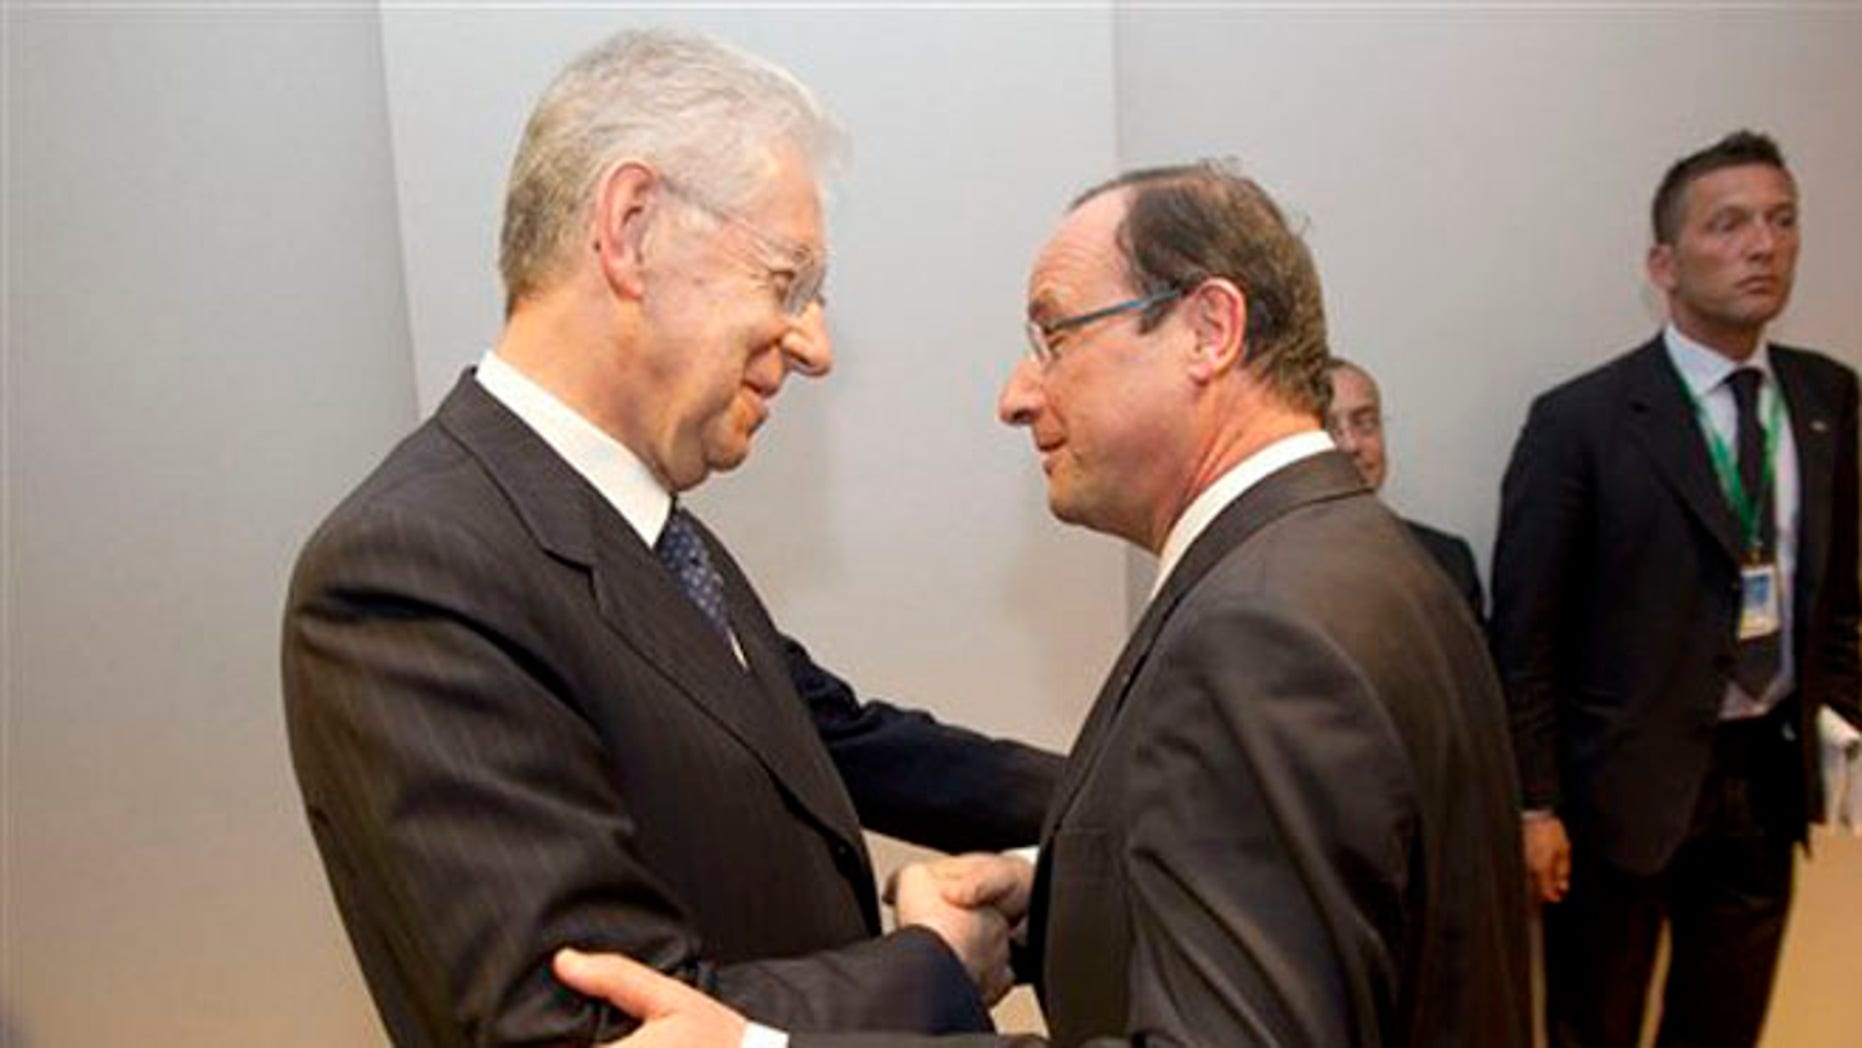 May 30, 2012: Italy's Prime Minister Mario Monti, left, shakes hands with French President Francois Hollande, right, prior to a bilateral meeting on sideline of an EU summit, at the European Council building in Brussels.